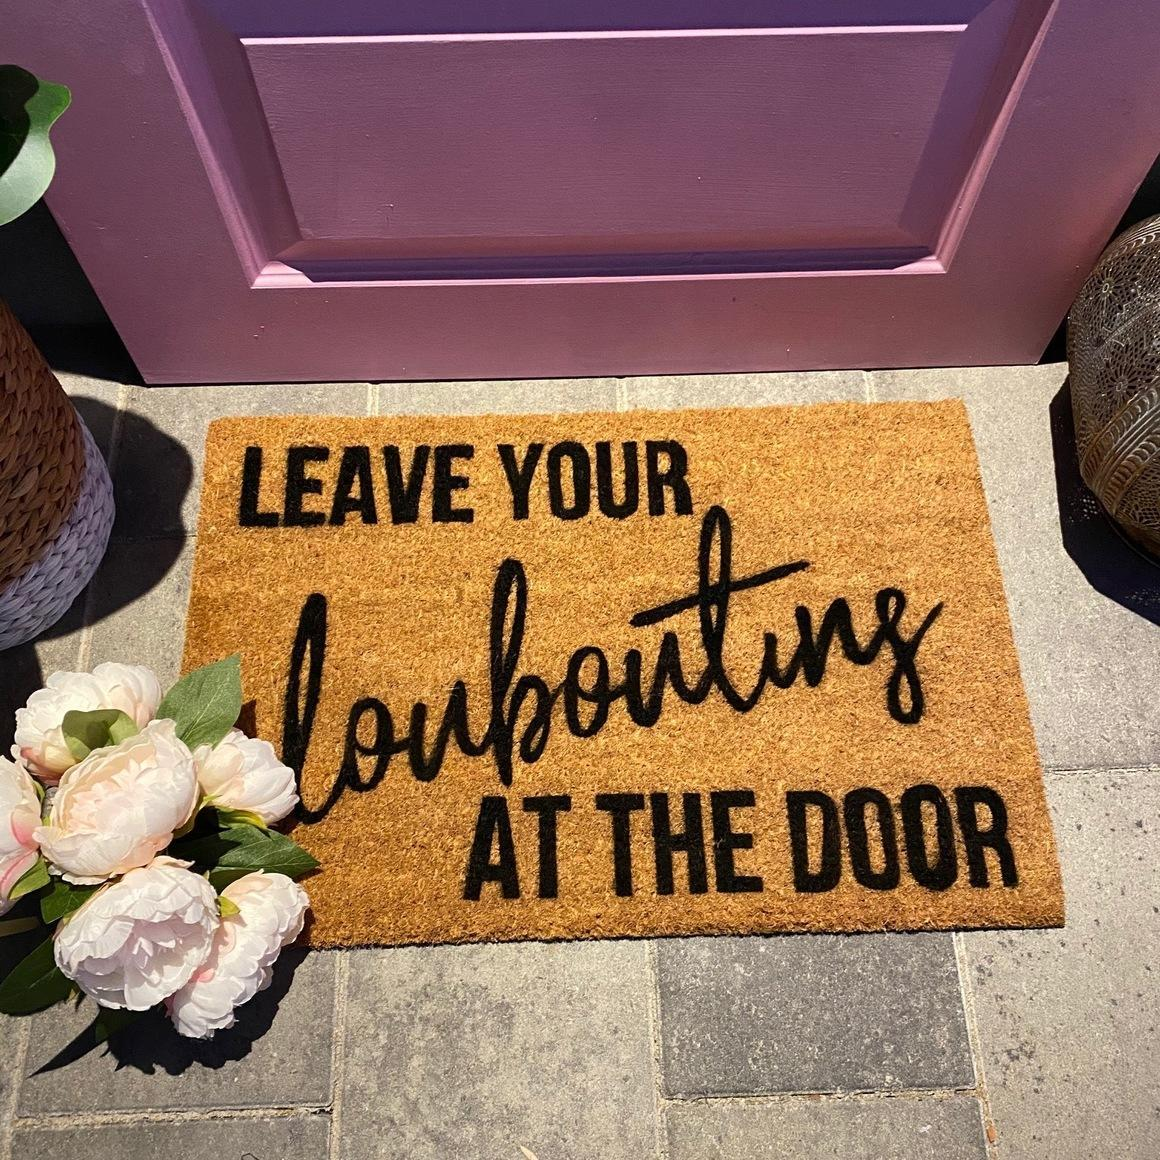 Leave Your Louboutins At The Door.   Trada Marketplace